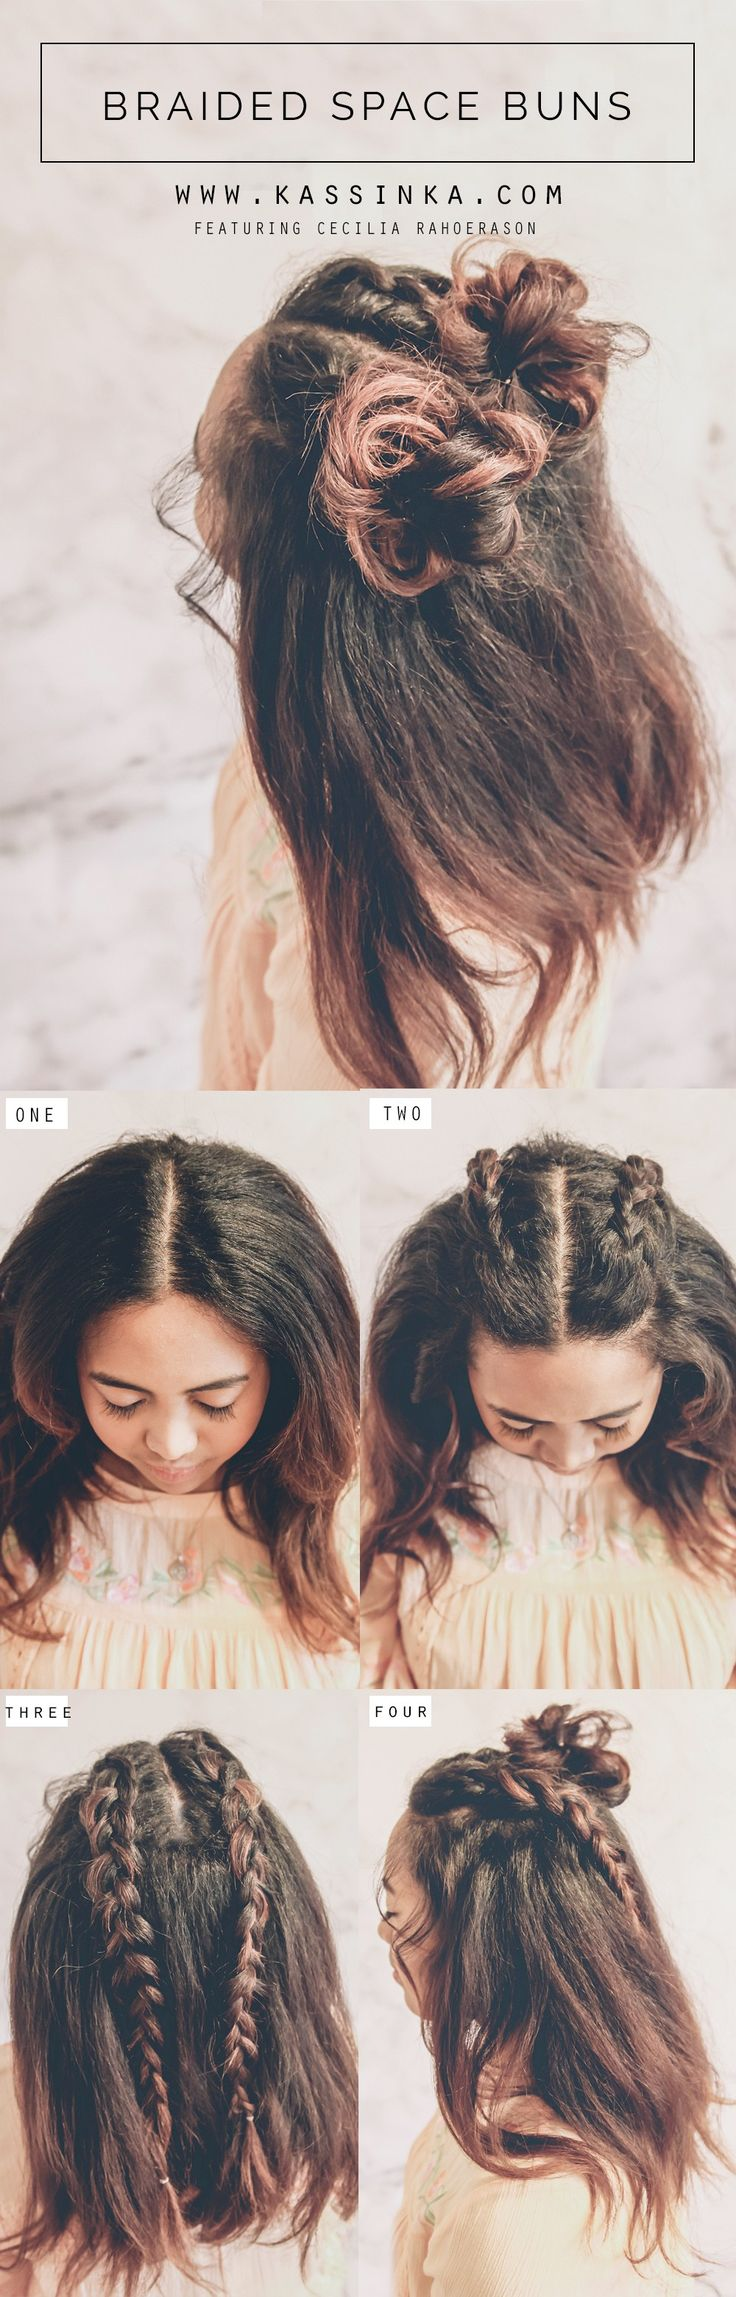 10 Metal Frisuren Manner Finden Sie Die Beste Frisur Inspiration Hier